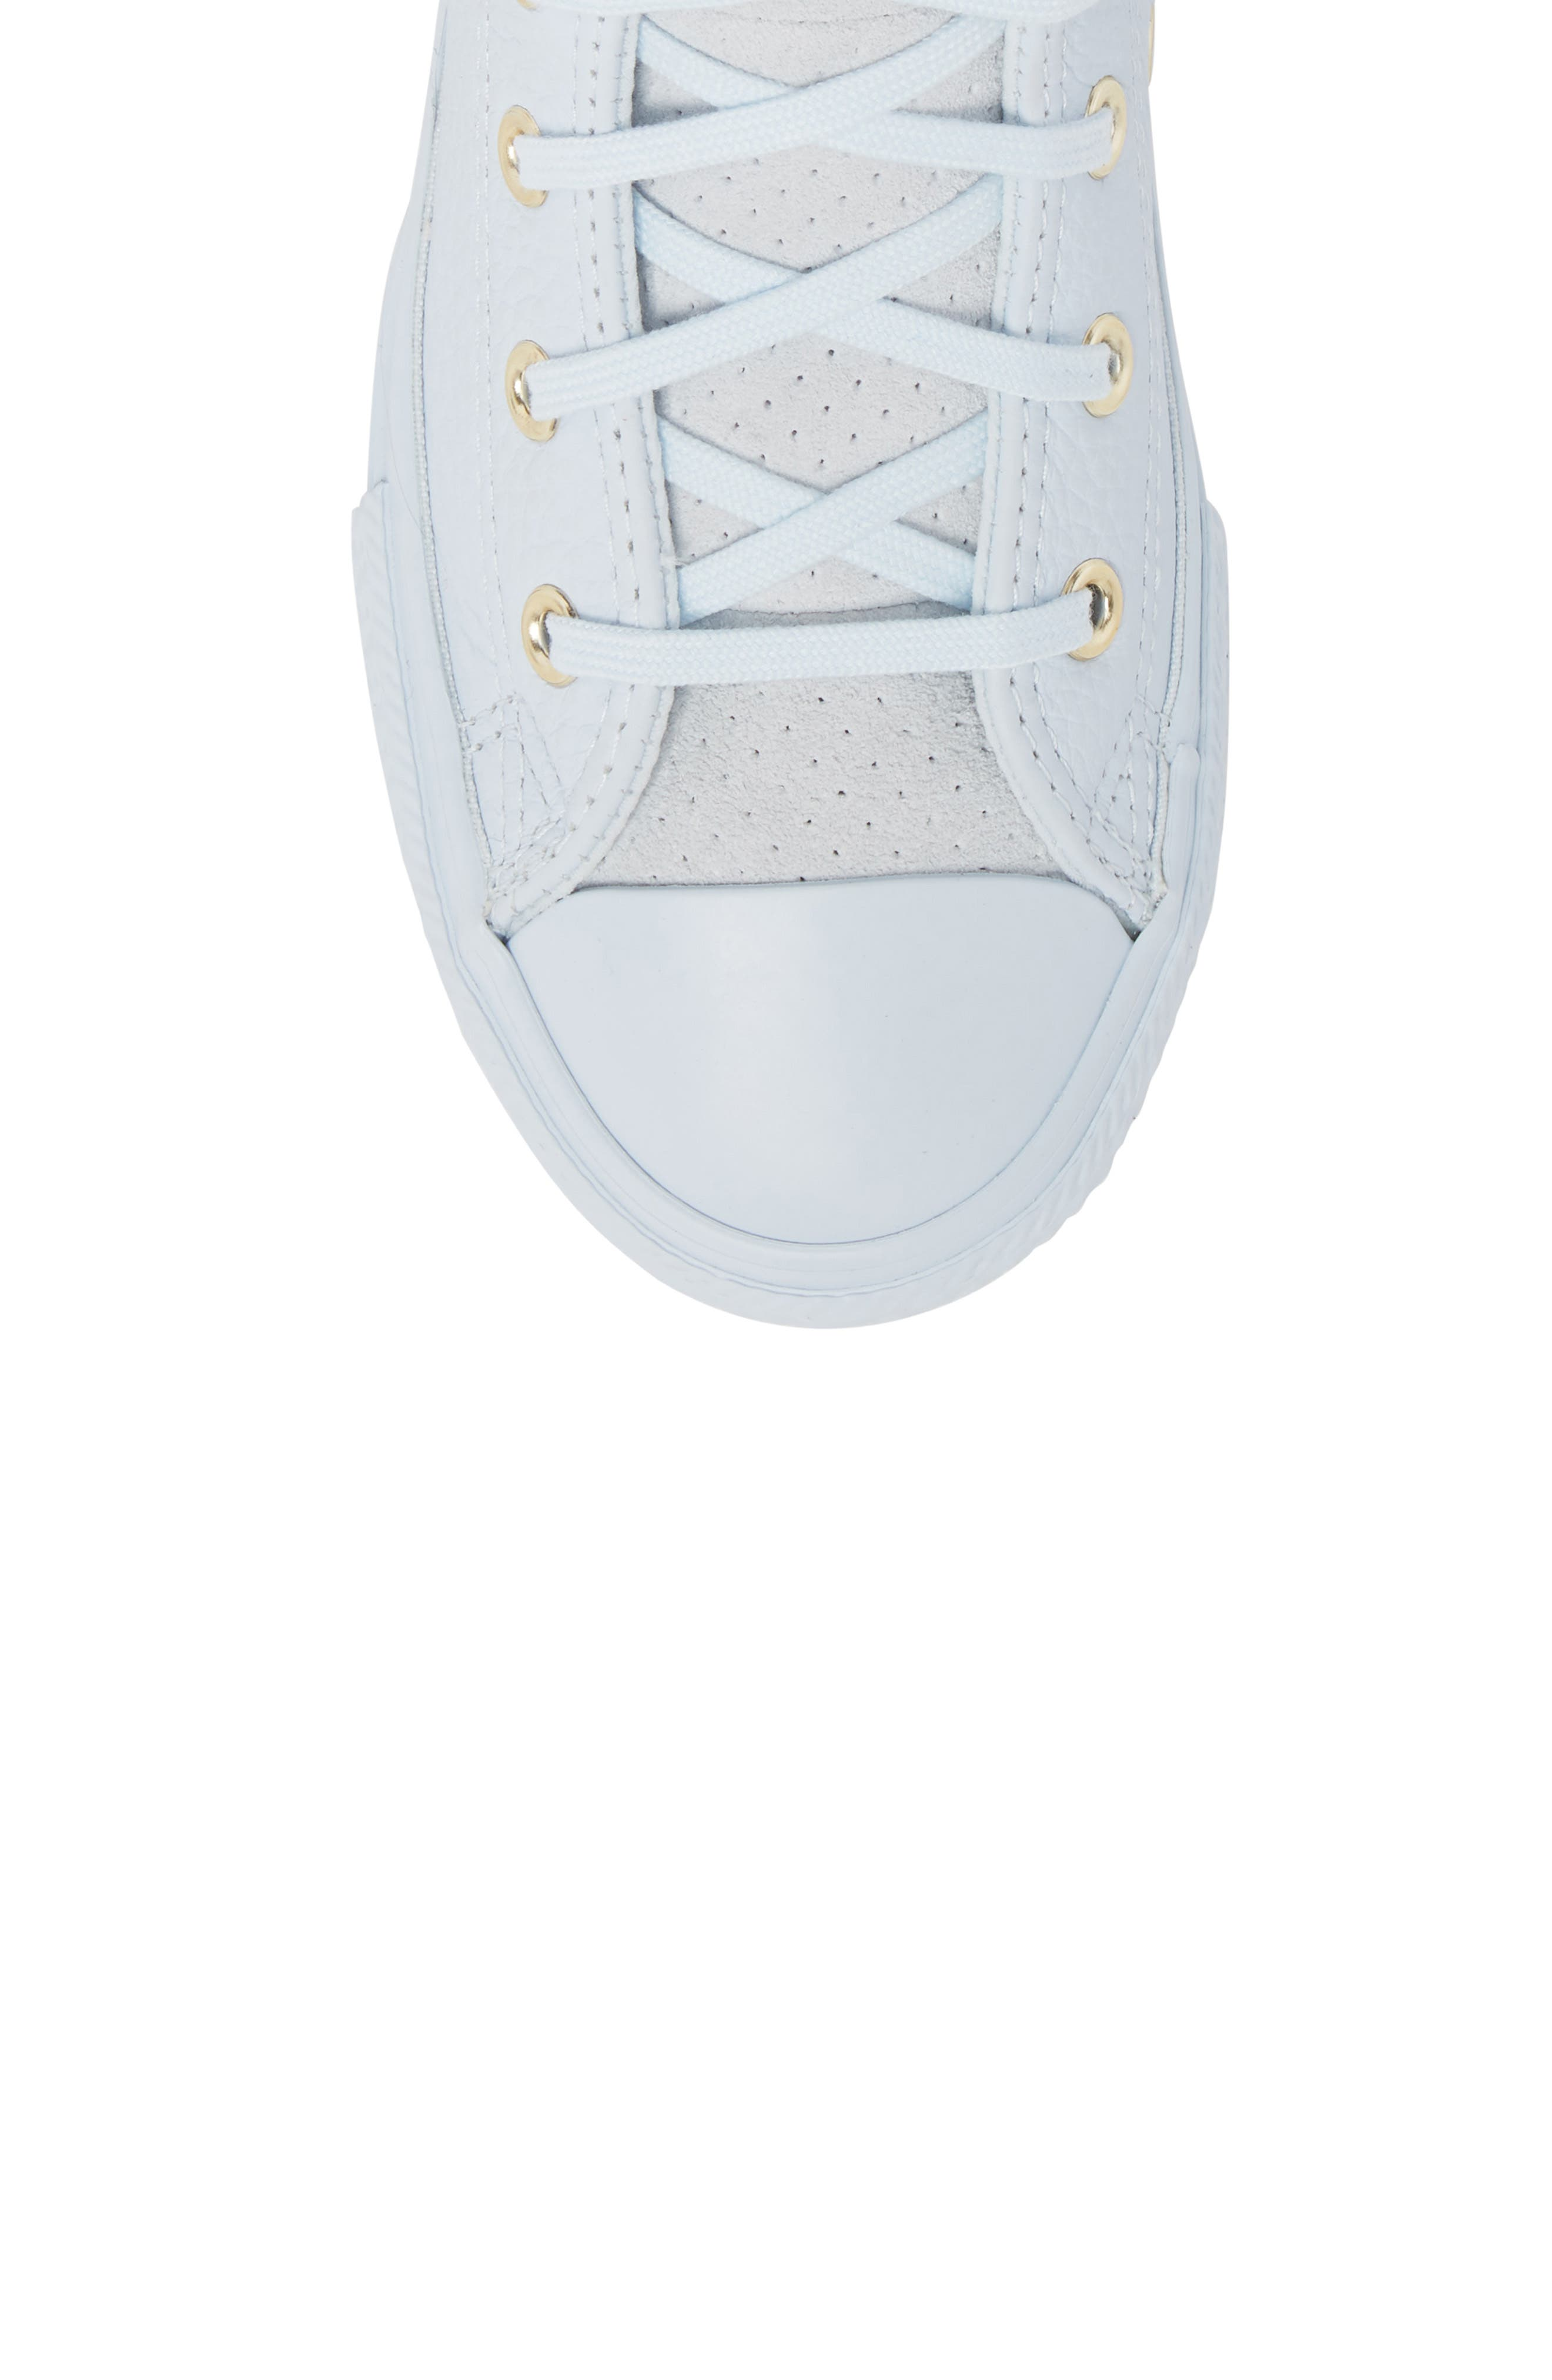 Chuck Taylor<sup>®</sup> All Star<sup>®</sup> Mono High Top Sneaker,                             Alternate thumbnail 5, color,                             Blue Tint